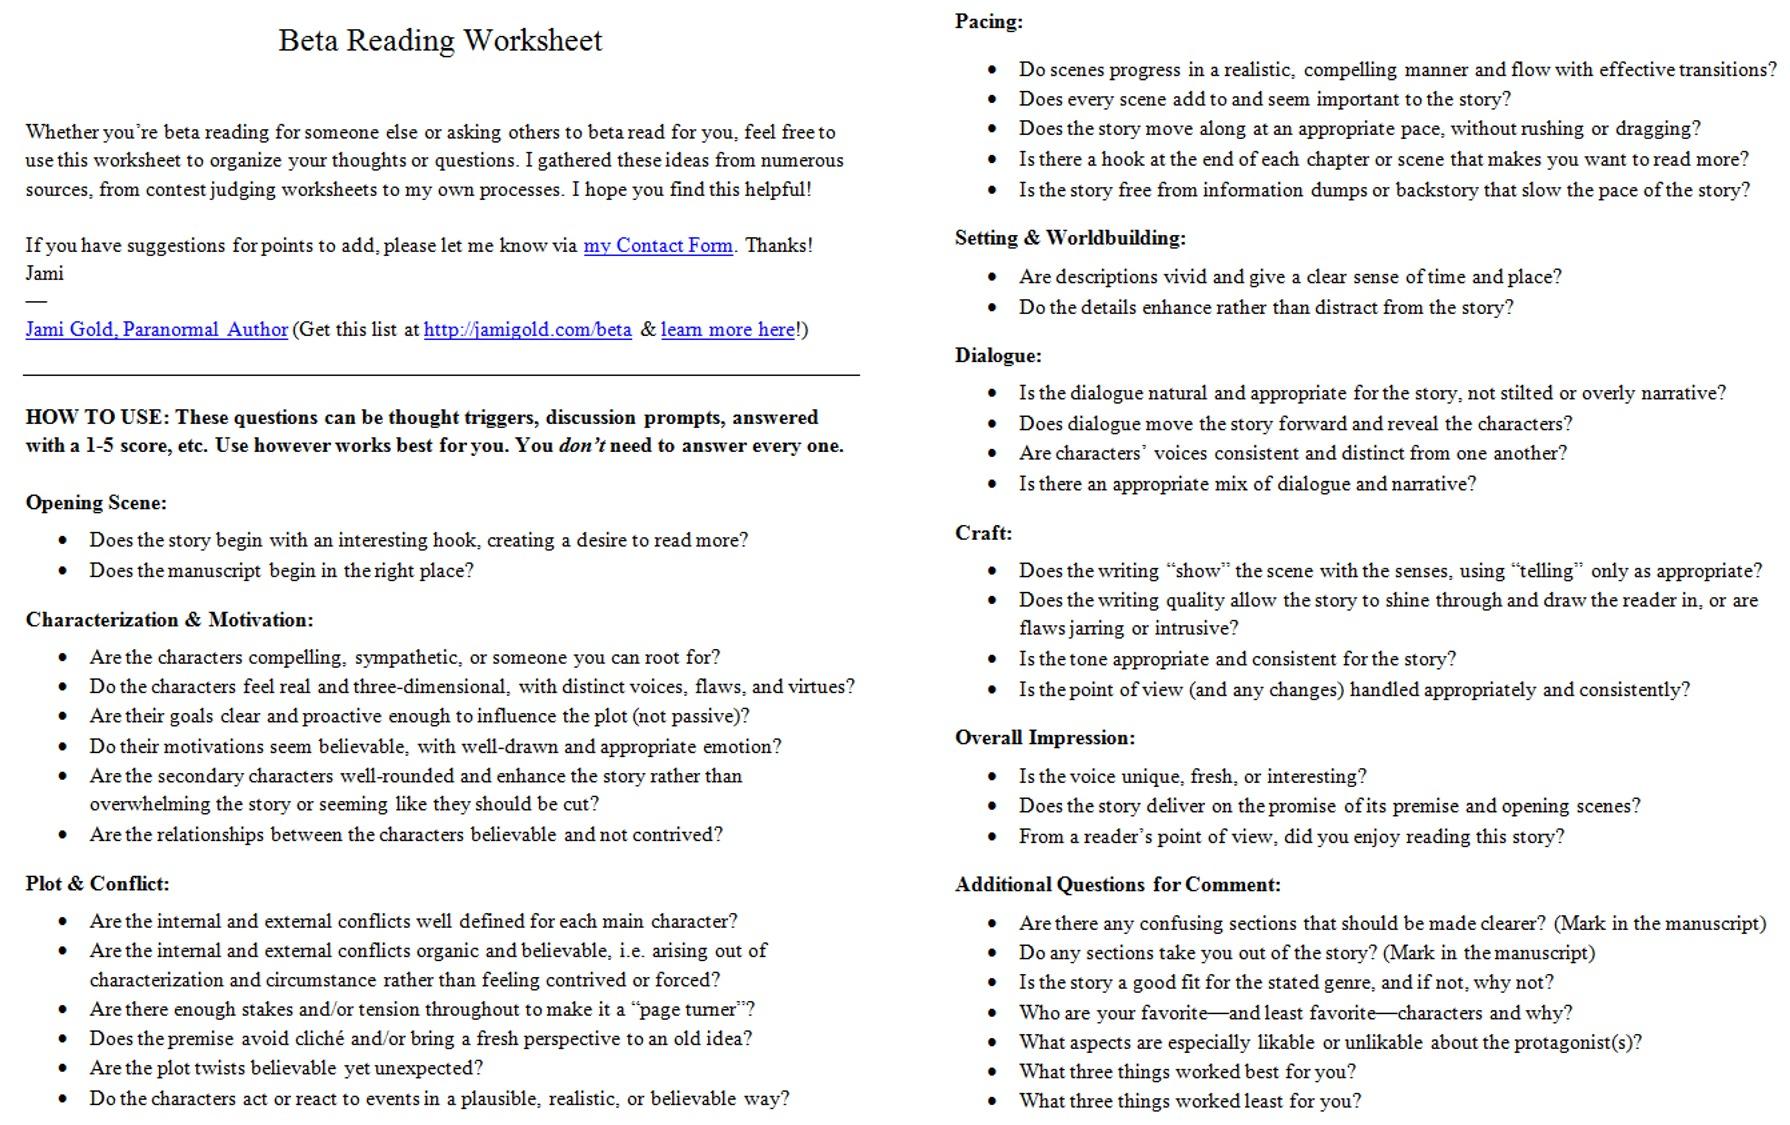 Aldiablosus  Winning Worksheets For Writers  Jami Gold Paranormal Author With Gorgeous Screen Shot Of The Twopage Beta Reading Worksheet With Agreeable Worksheet Punctuation Also Properties Of D Shapes Worksheet In Addition Nomenclature Practice Worksheets And Worksheets On Feelings And Emotions As Well As Electric Circuit Worksheets Additionally Homophones Free Worksheets From Jamigoldcom With Aldiablosus  Gorgeous Worksheets For Writers  Jami Gold Paranormal Author With Agreeable Screen Shot Of The Twopage Beta Reading Worksheet And Winning Worksheet Punctuation Also Properties Of D Shapes Worksheet In Addition Nomenclature Practice Worksheets From Jamigoldcom